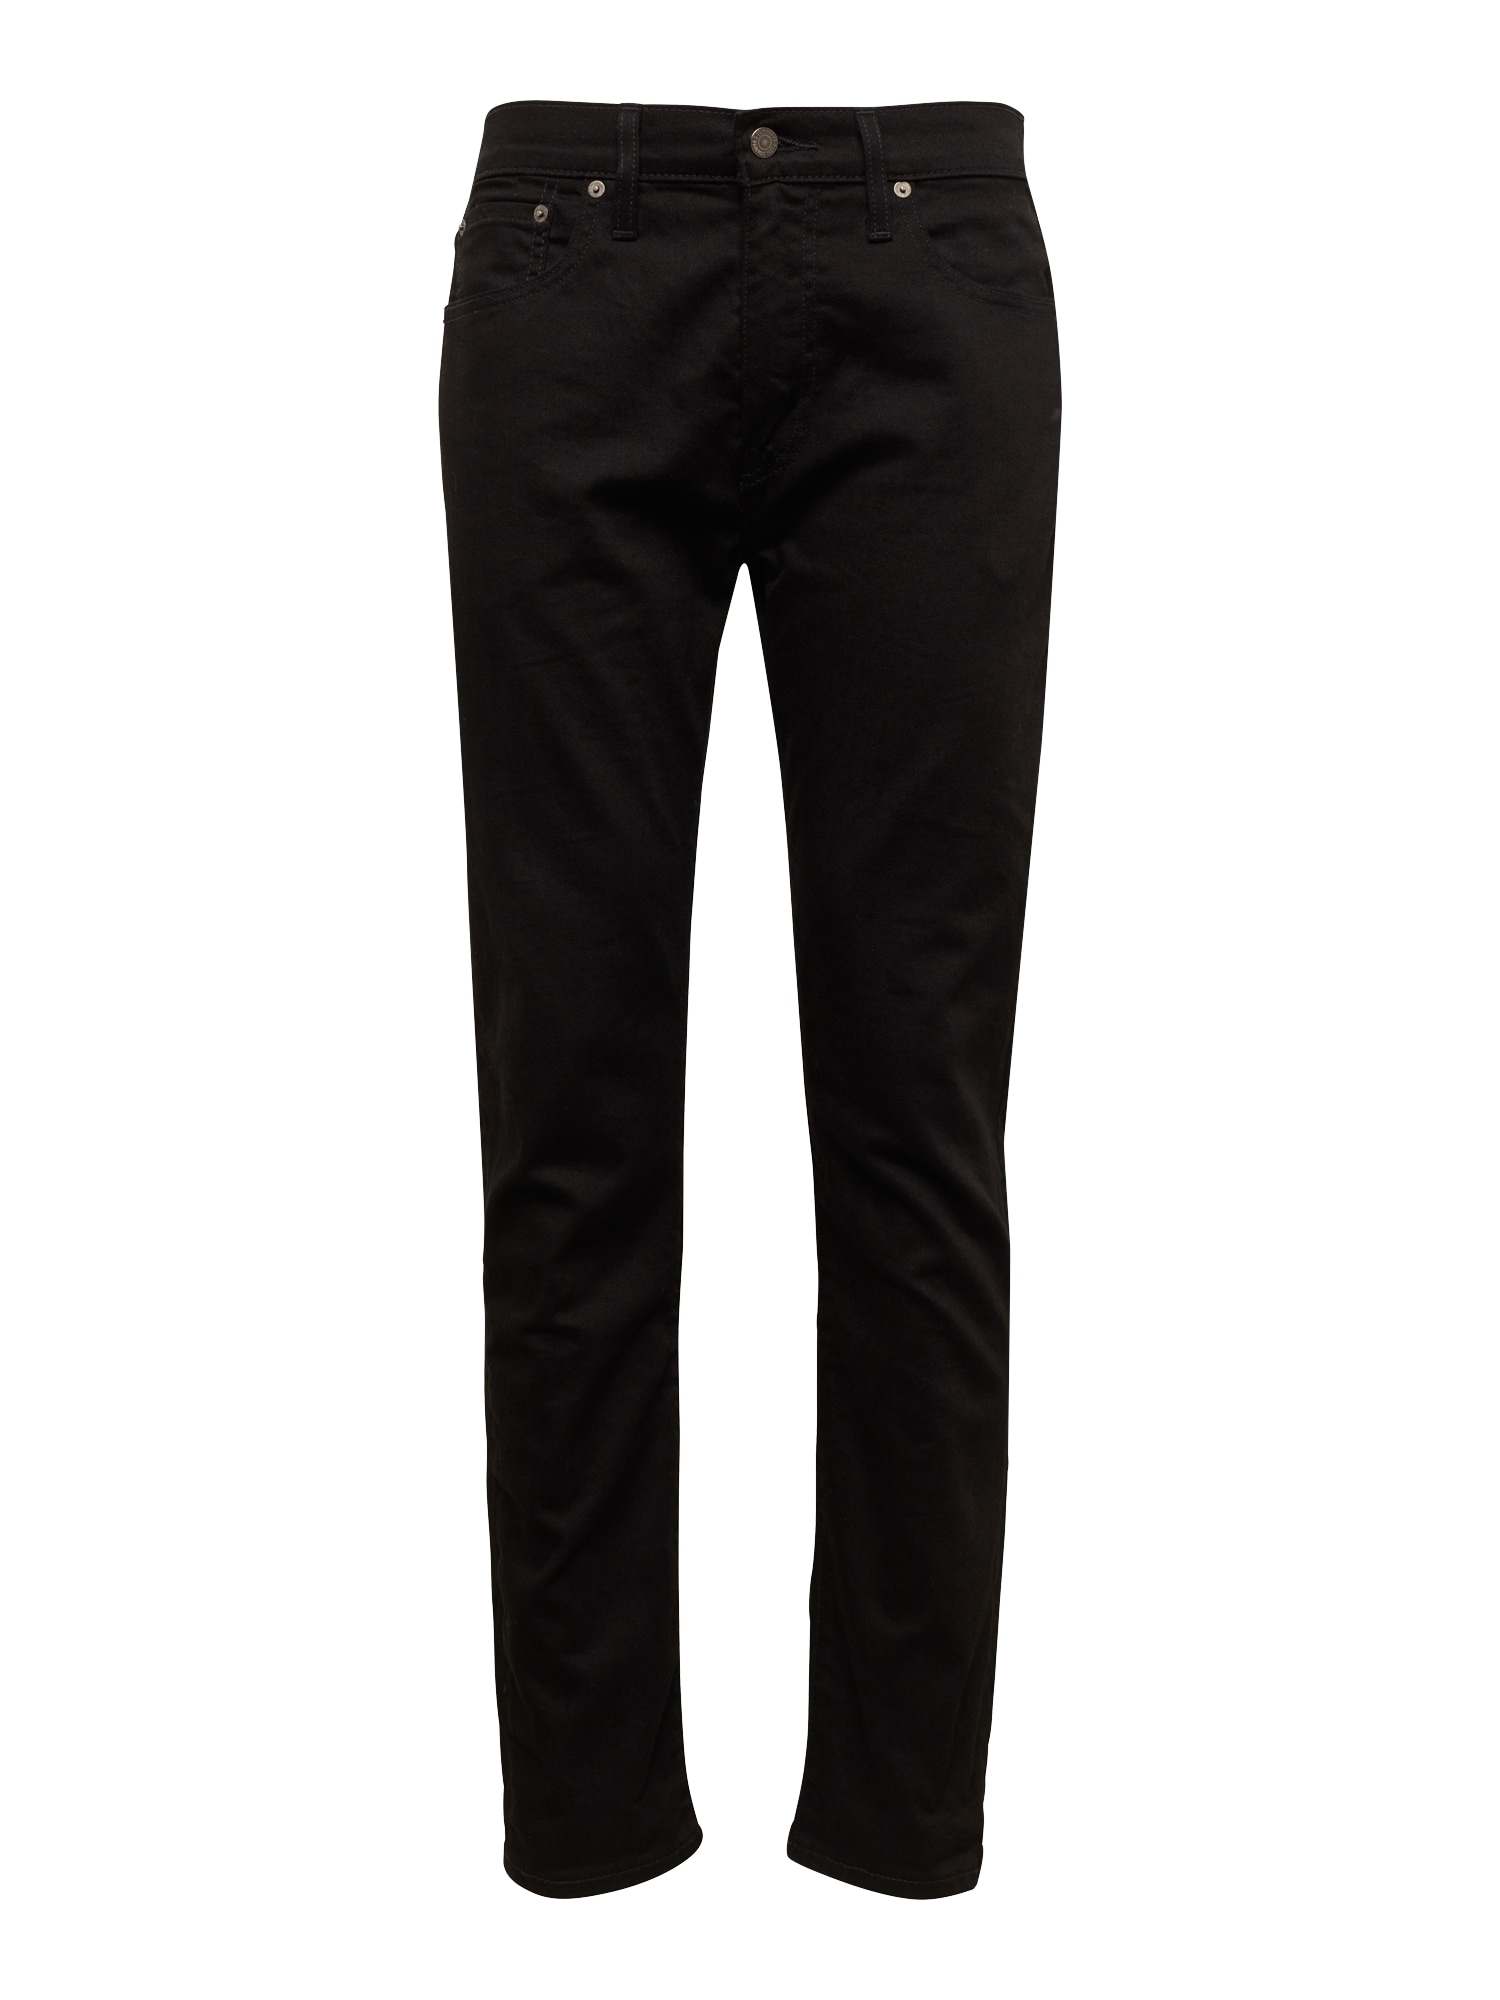 LEVI'S Heren Jeans 502™ REGULAR TAPER black denim